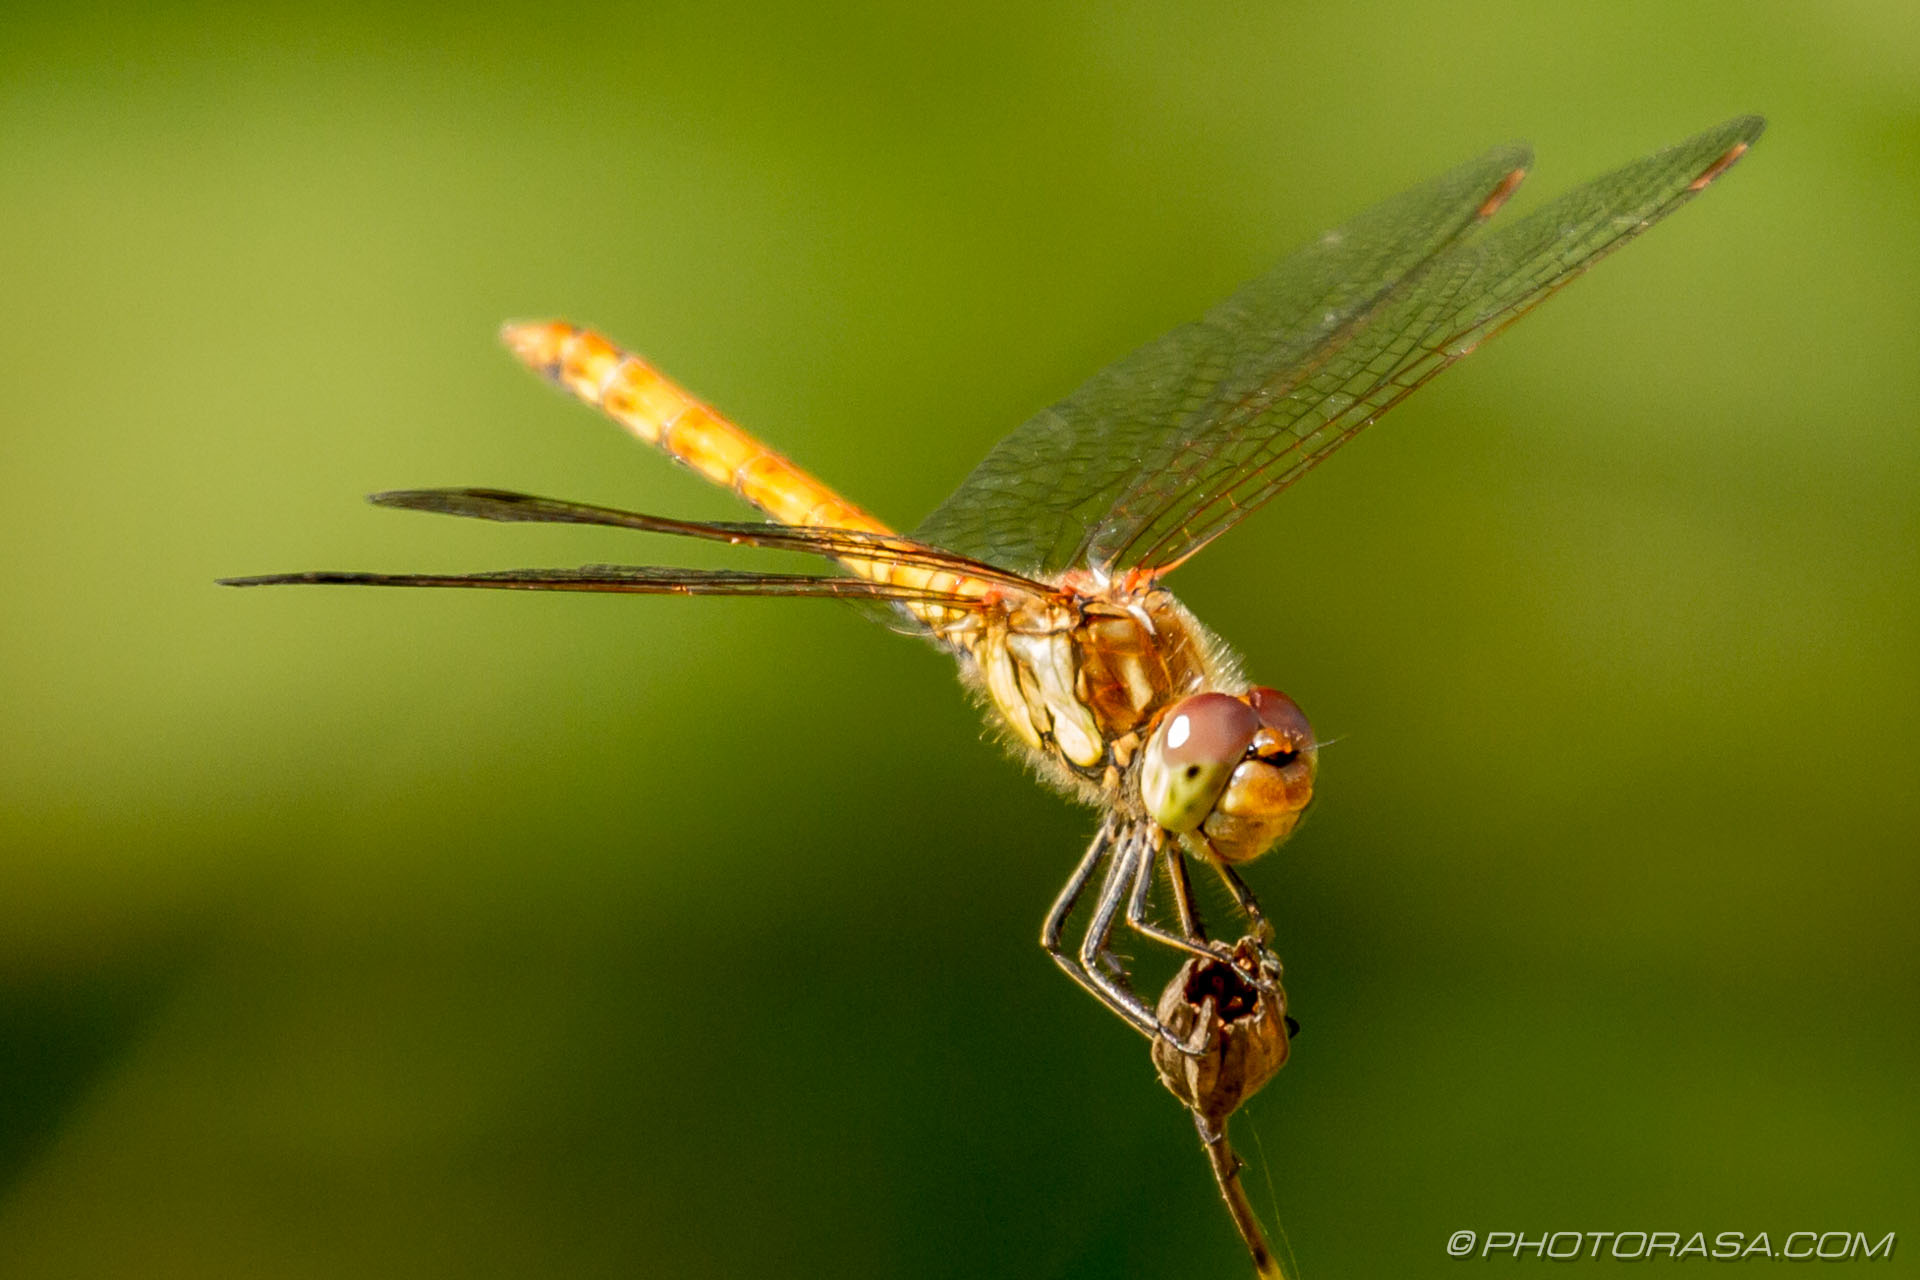 https://photorasa.com/dragonflies/female-common-darter-perched-on-flower/